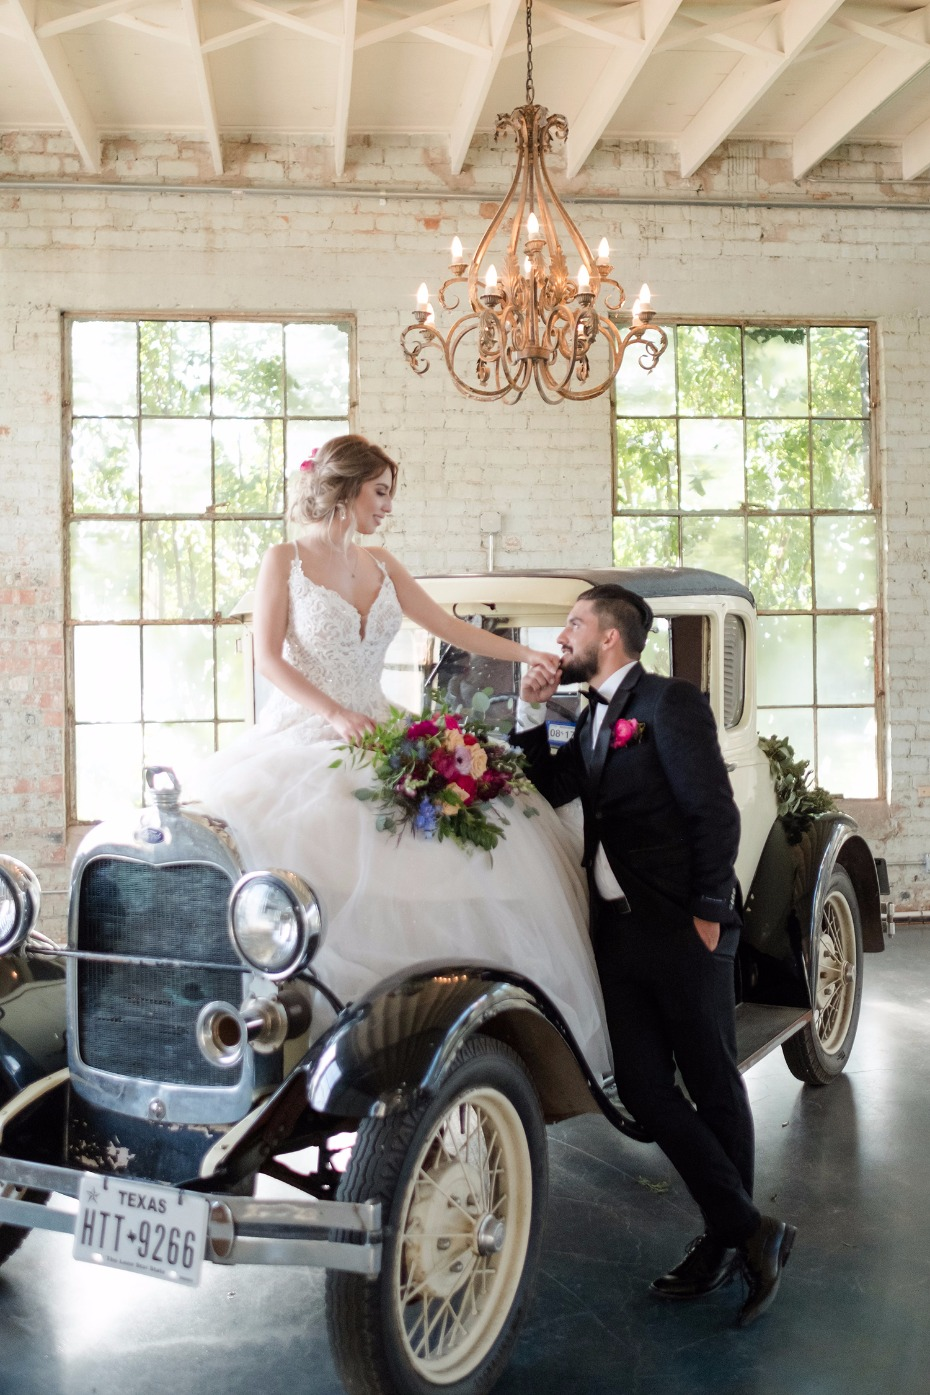 romantic wedding ideas with vintage wedding car